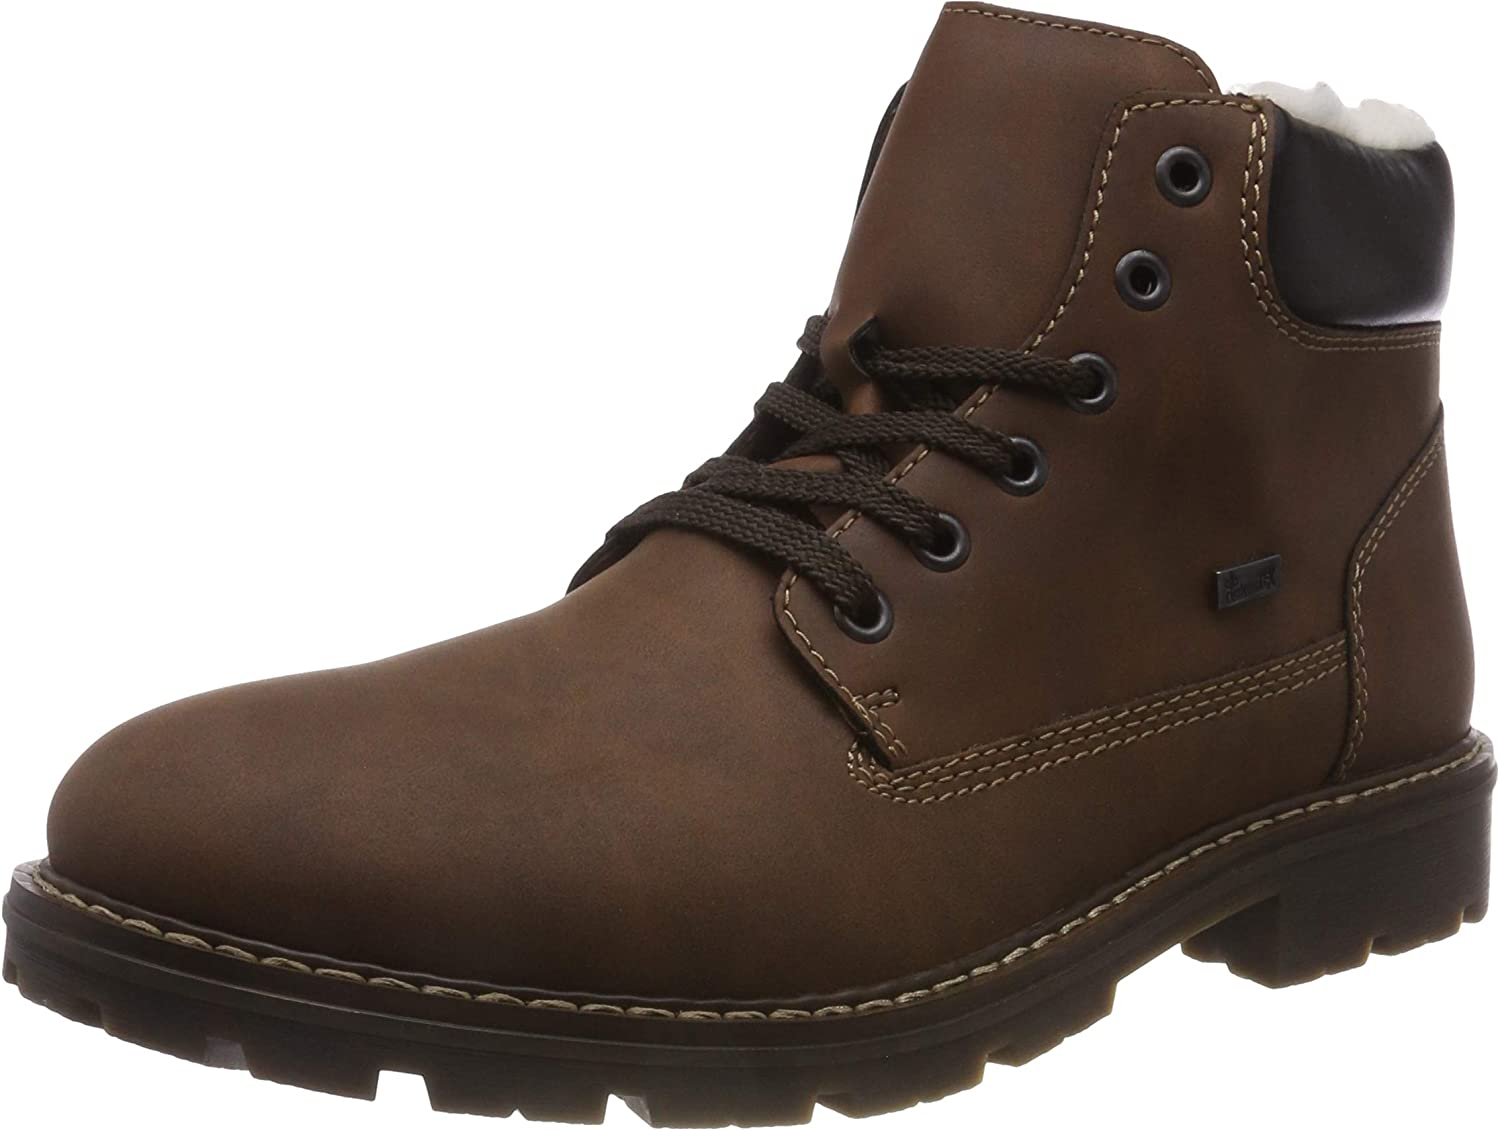 Rieker Mens-Stiefel Excellence Now on sale Braun 2 Gr.